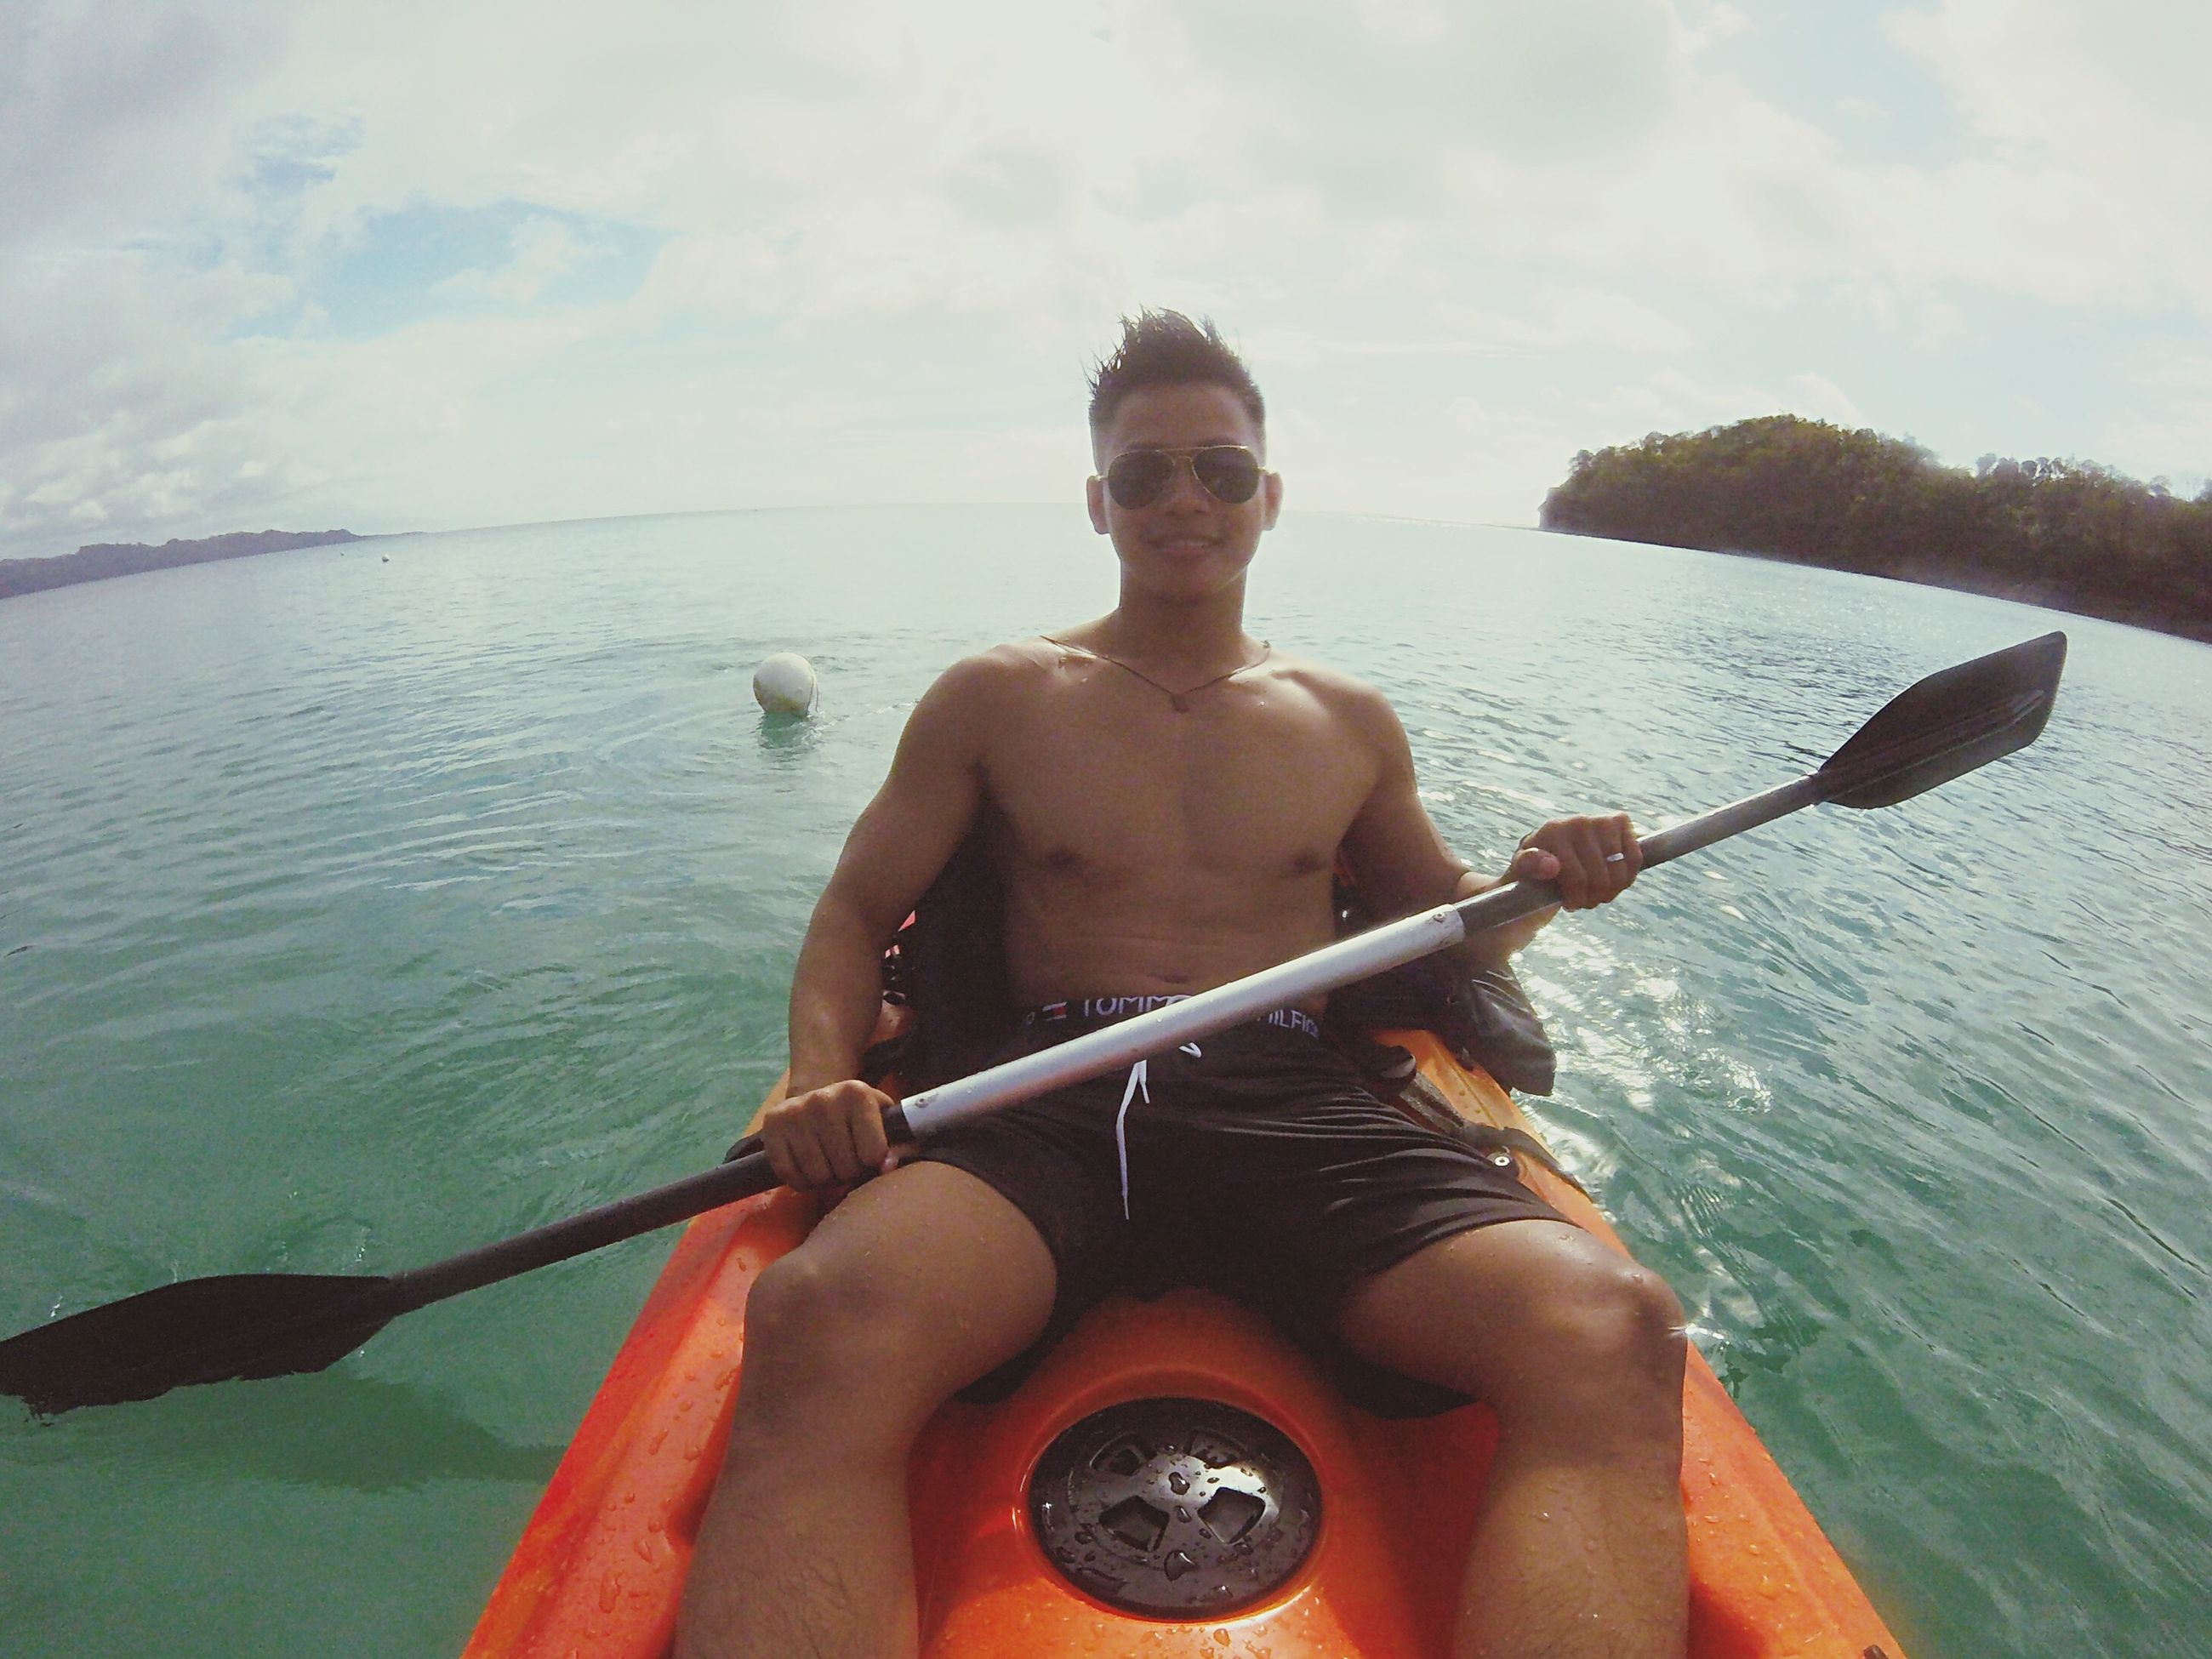 sea, leisure activity, one person, real people, shirtless, front view, vacations, men, cloud - sky, young adult, horizon over water, water, day, beach, outdoors, sport, one man only, adults only, sky, only men, adult, nature, oar, beauty in nature, people, sportsman